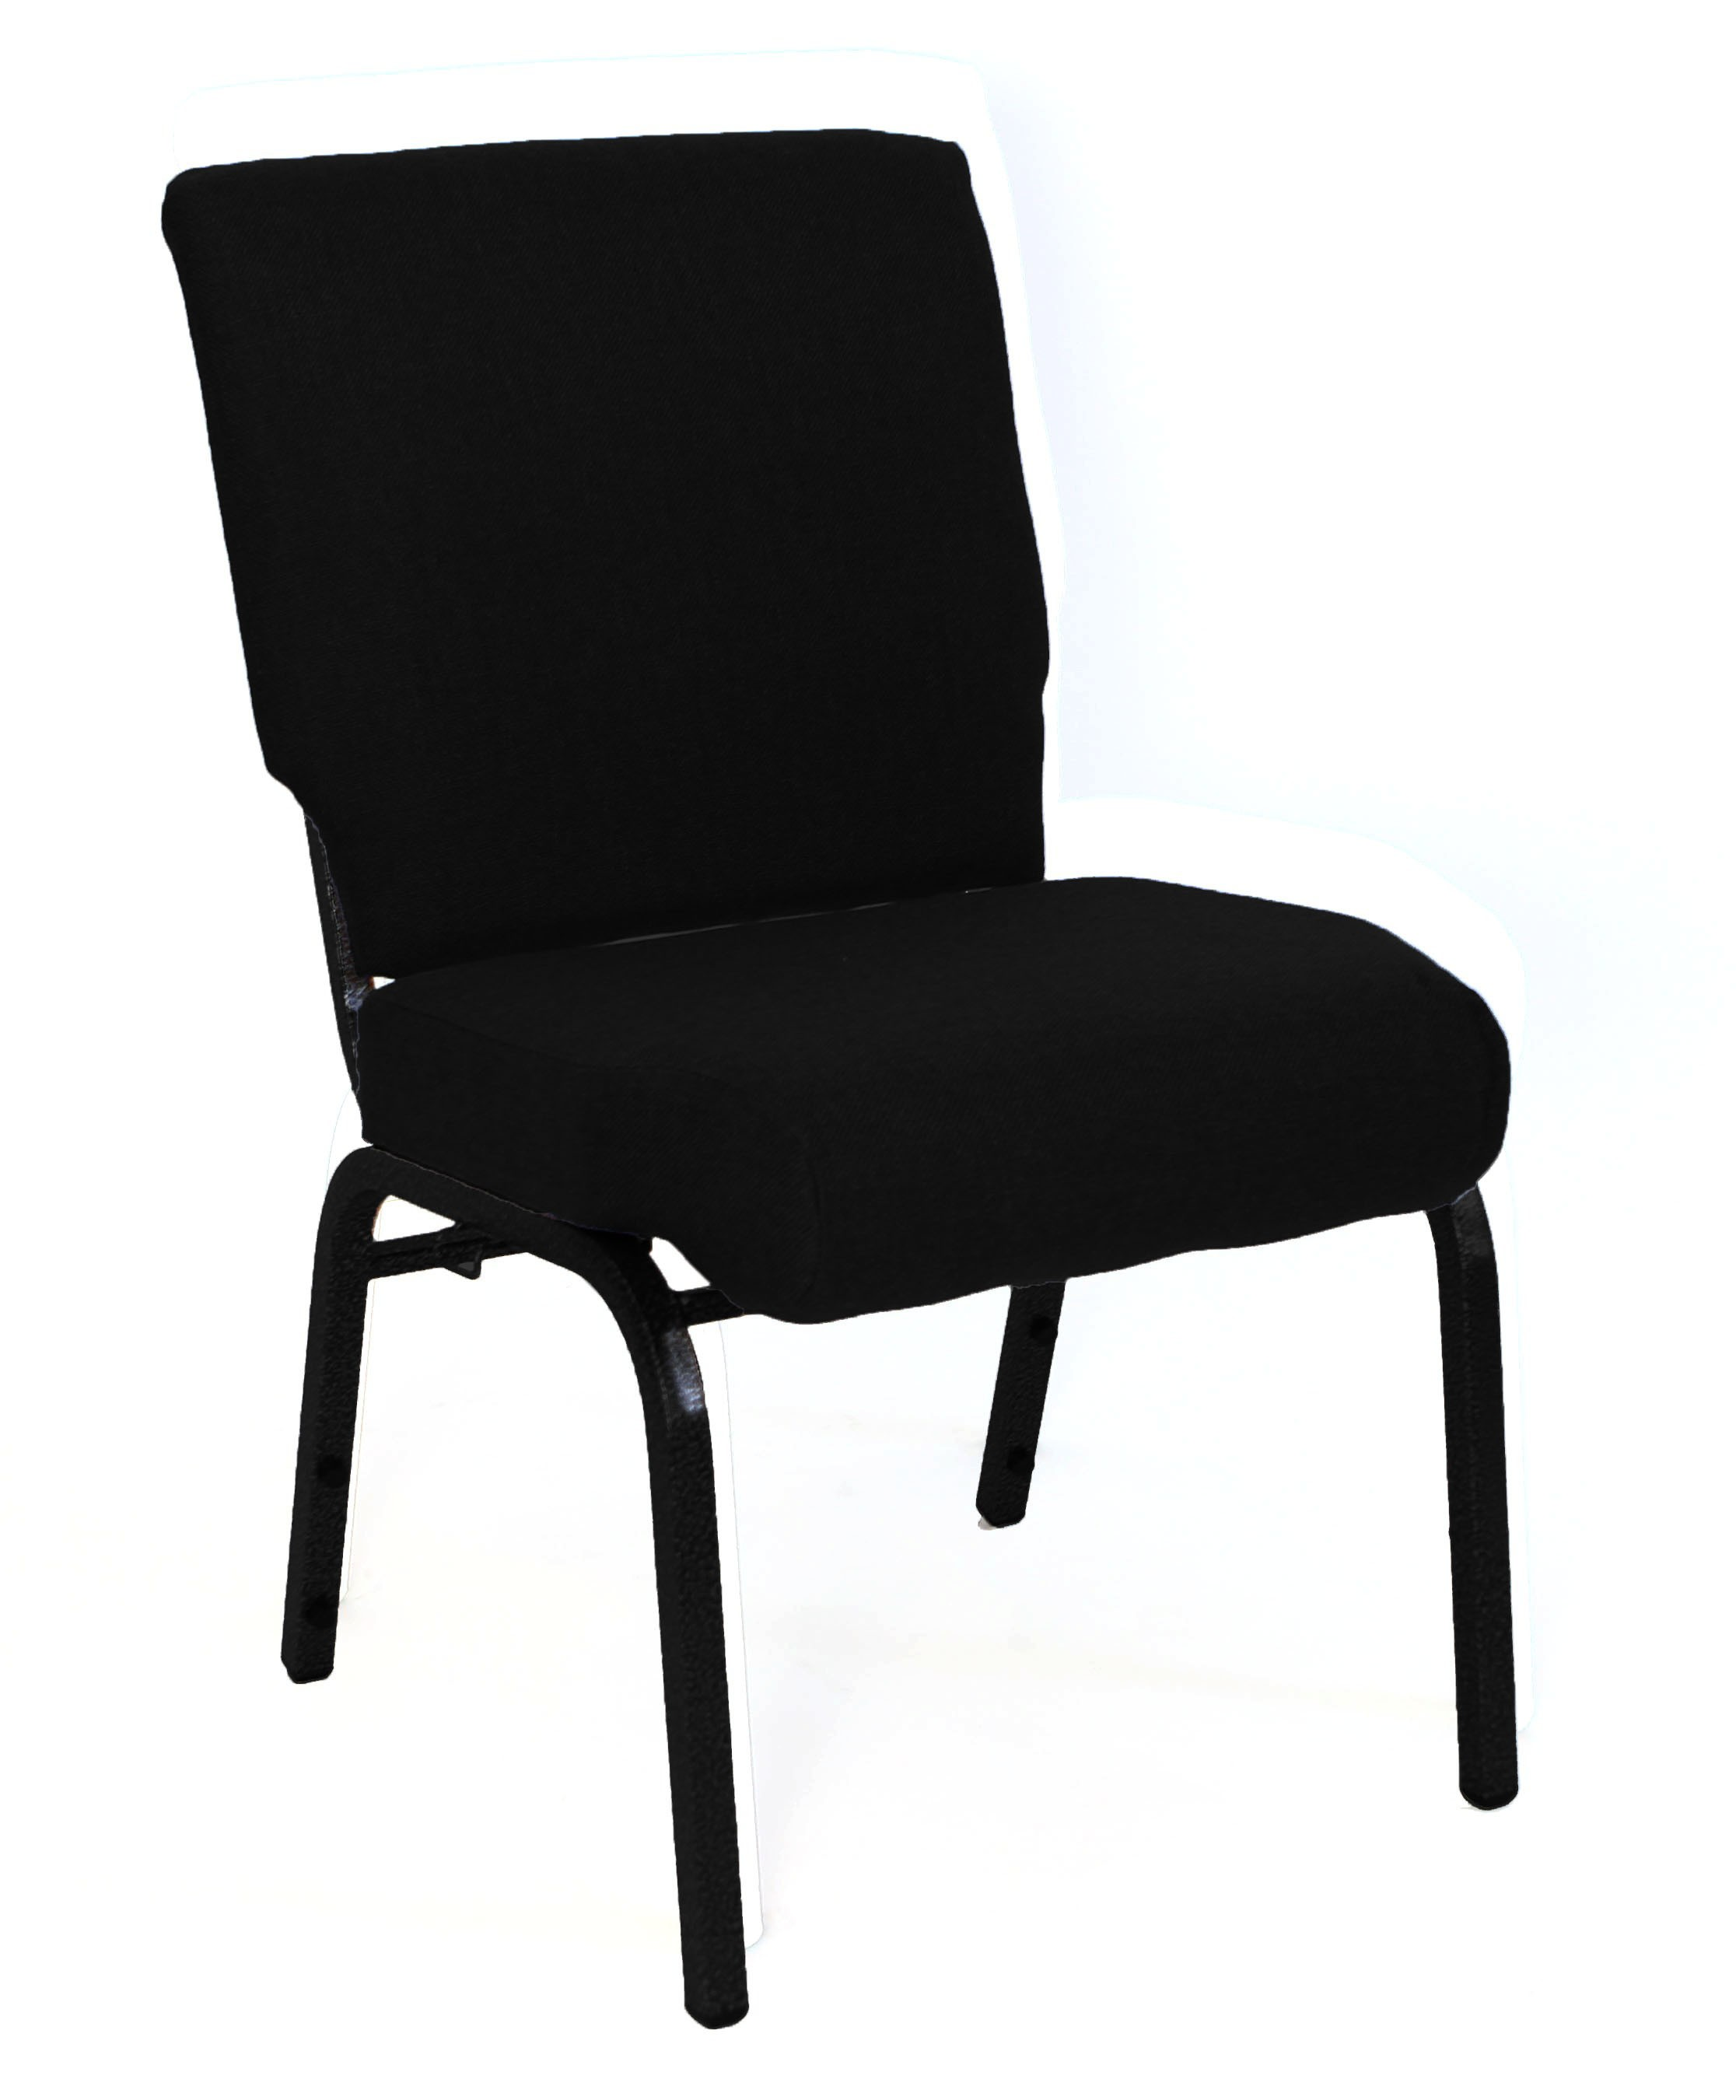 cheap church chairs chair cover rentals pensacola fl if you have any questions on price or shipping call